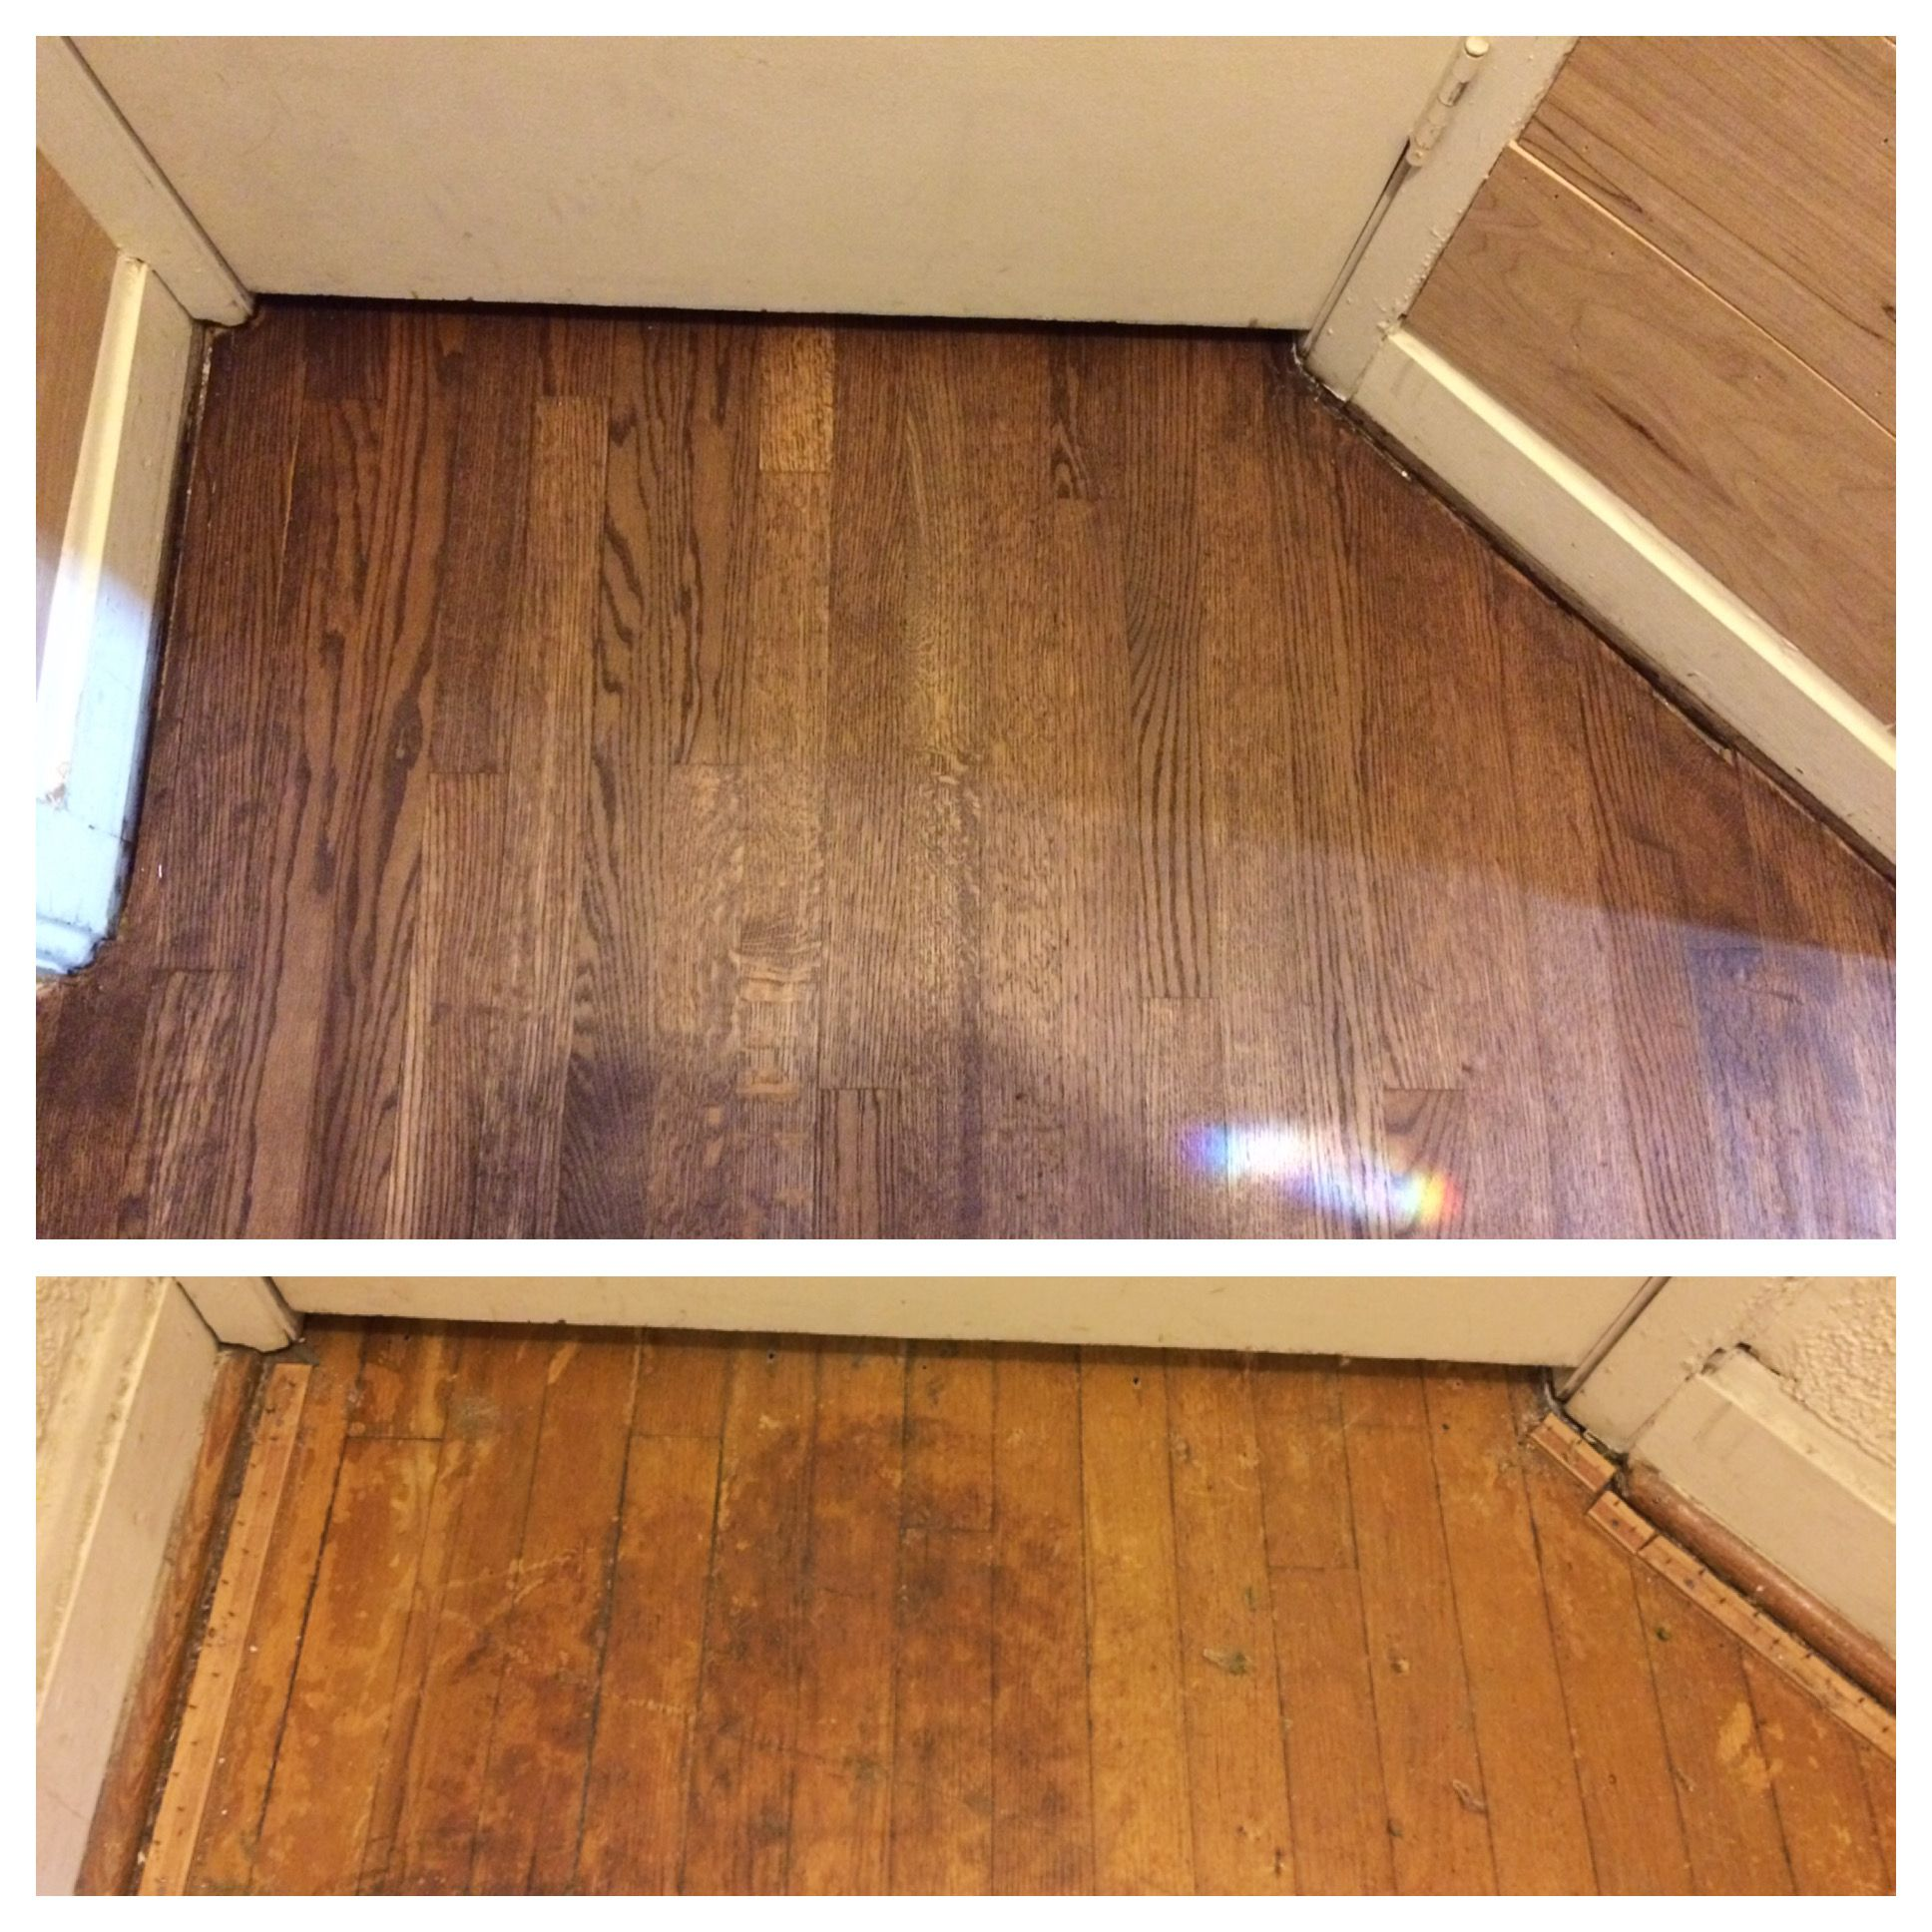 Red oak floor refinished. Before and after. Sanded out ...